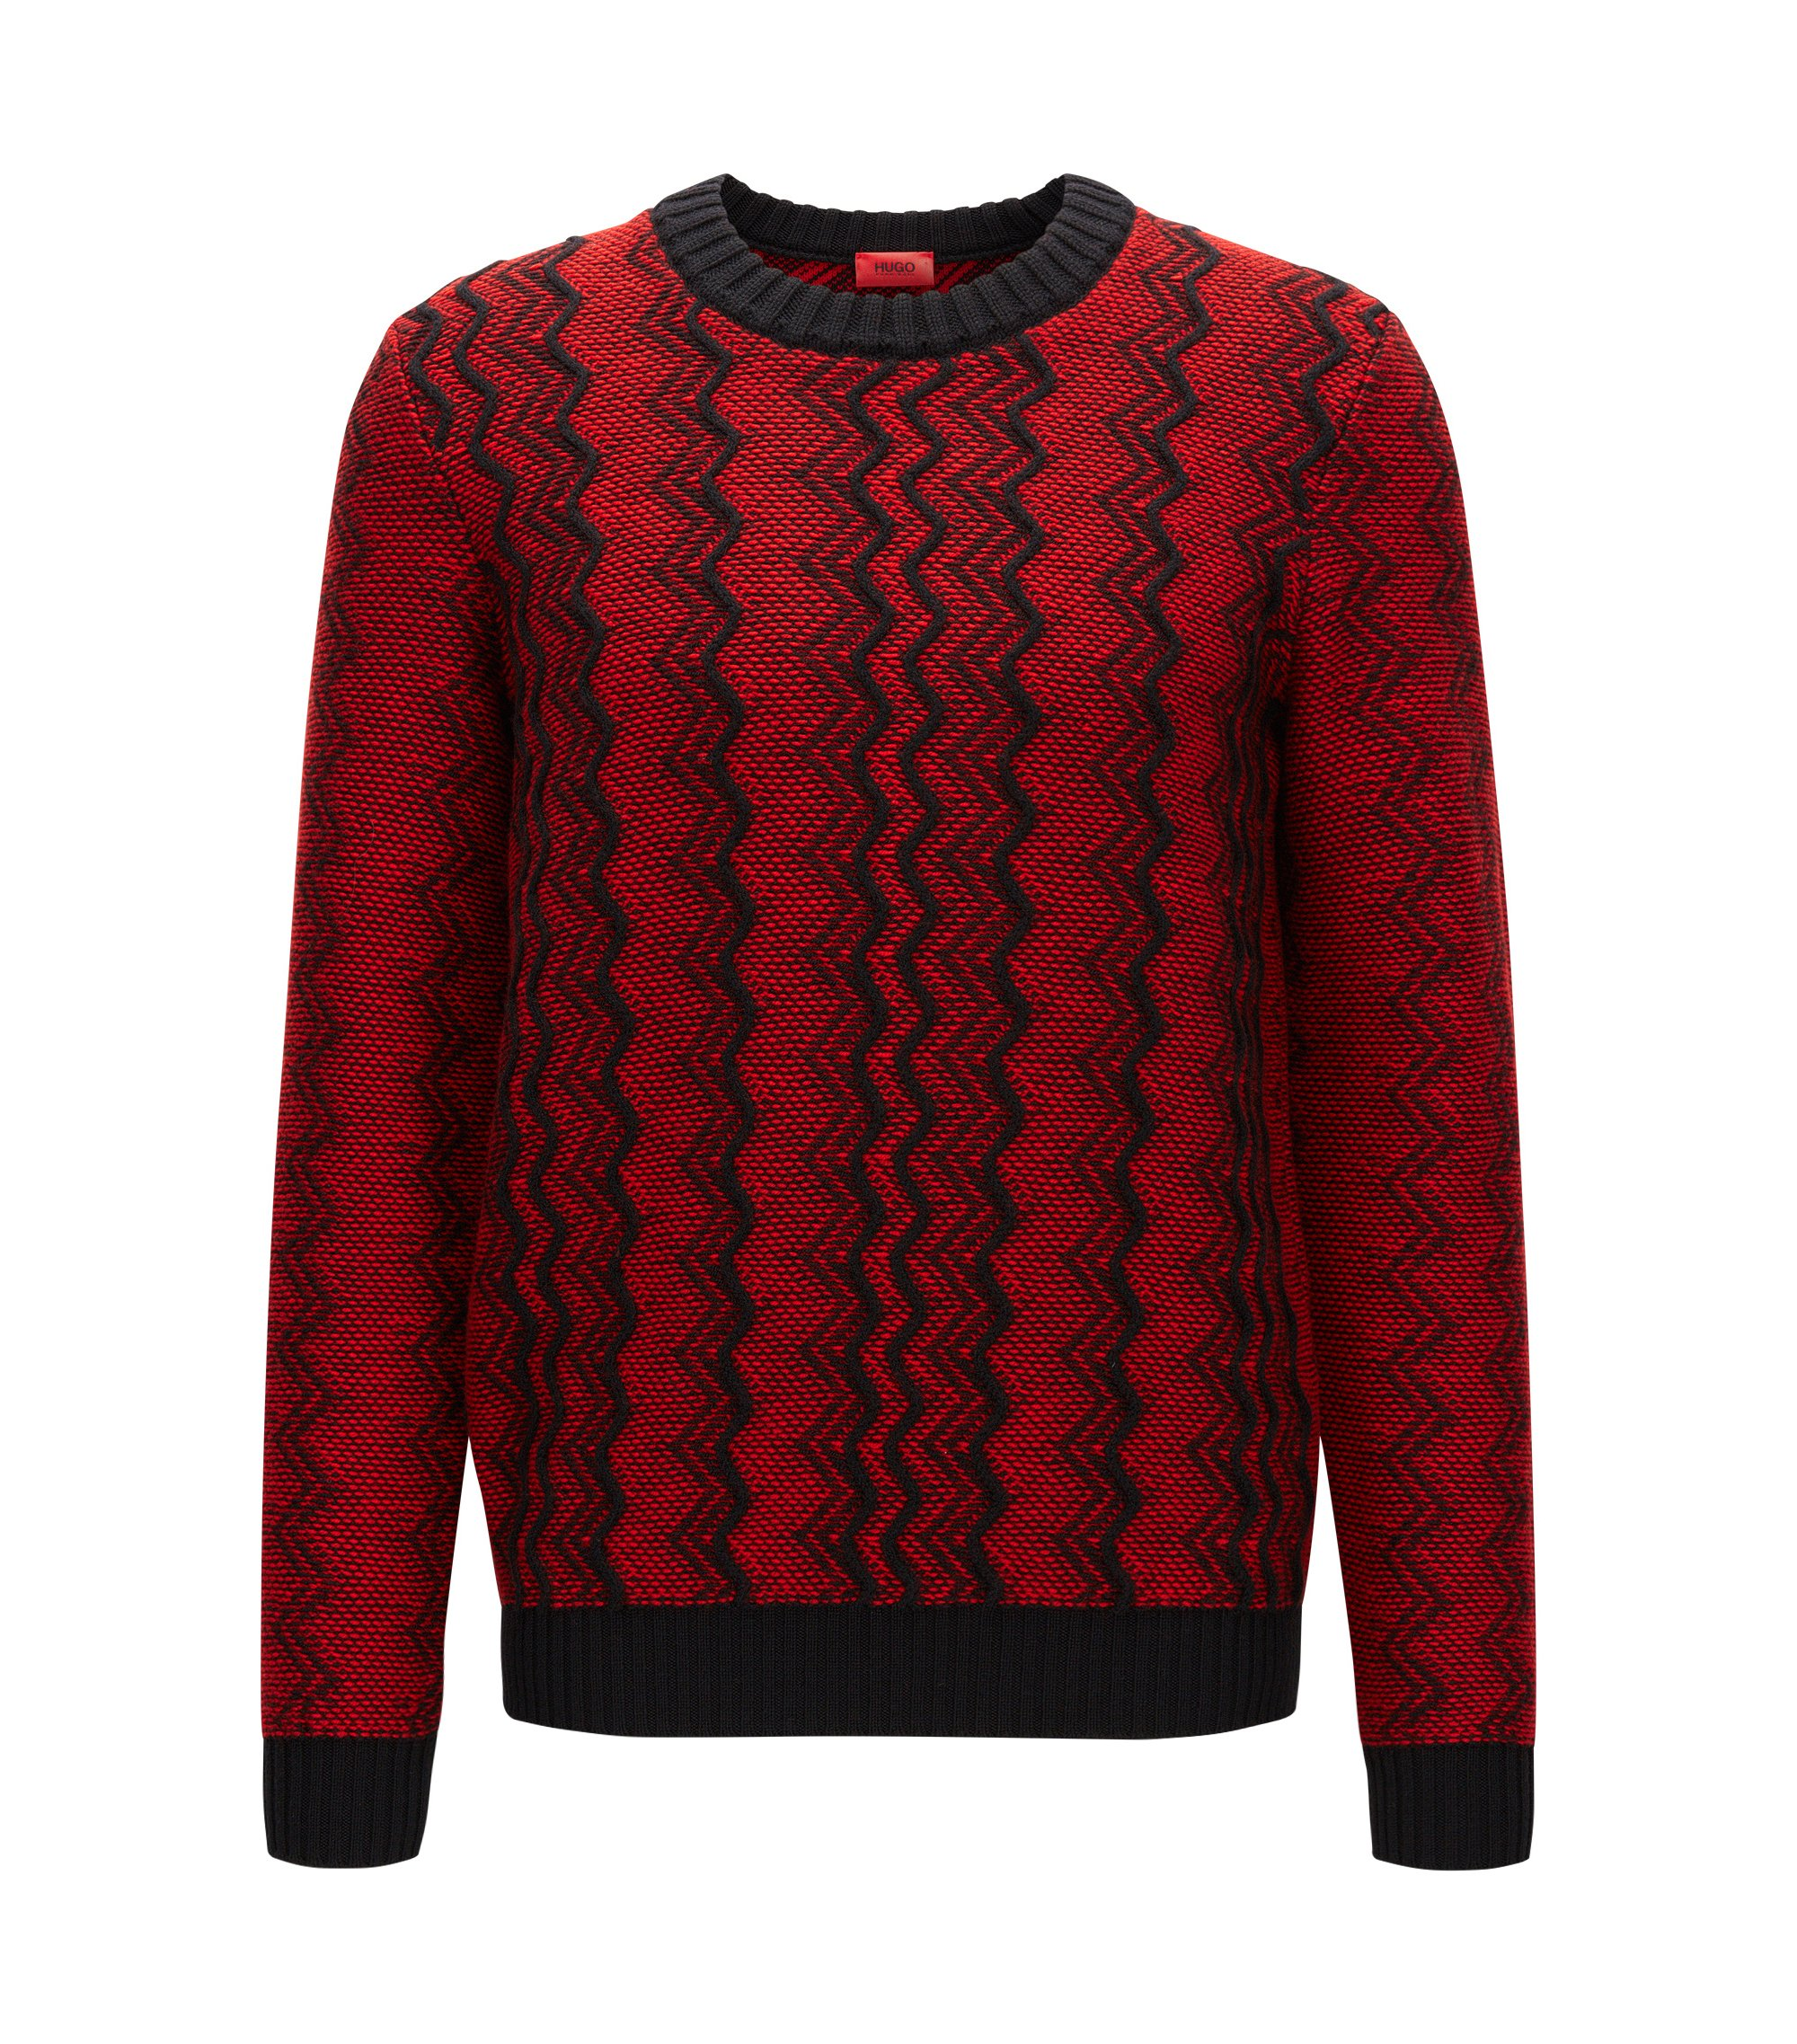 Zig Zag Virgin Wool Sweater | Sigsag, Red